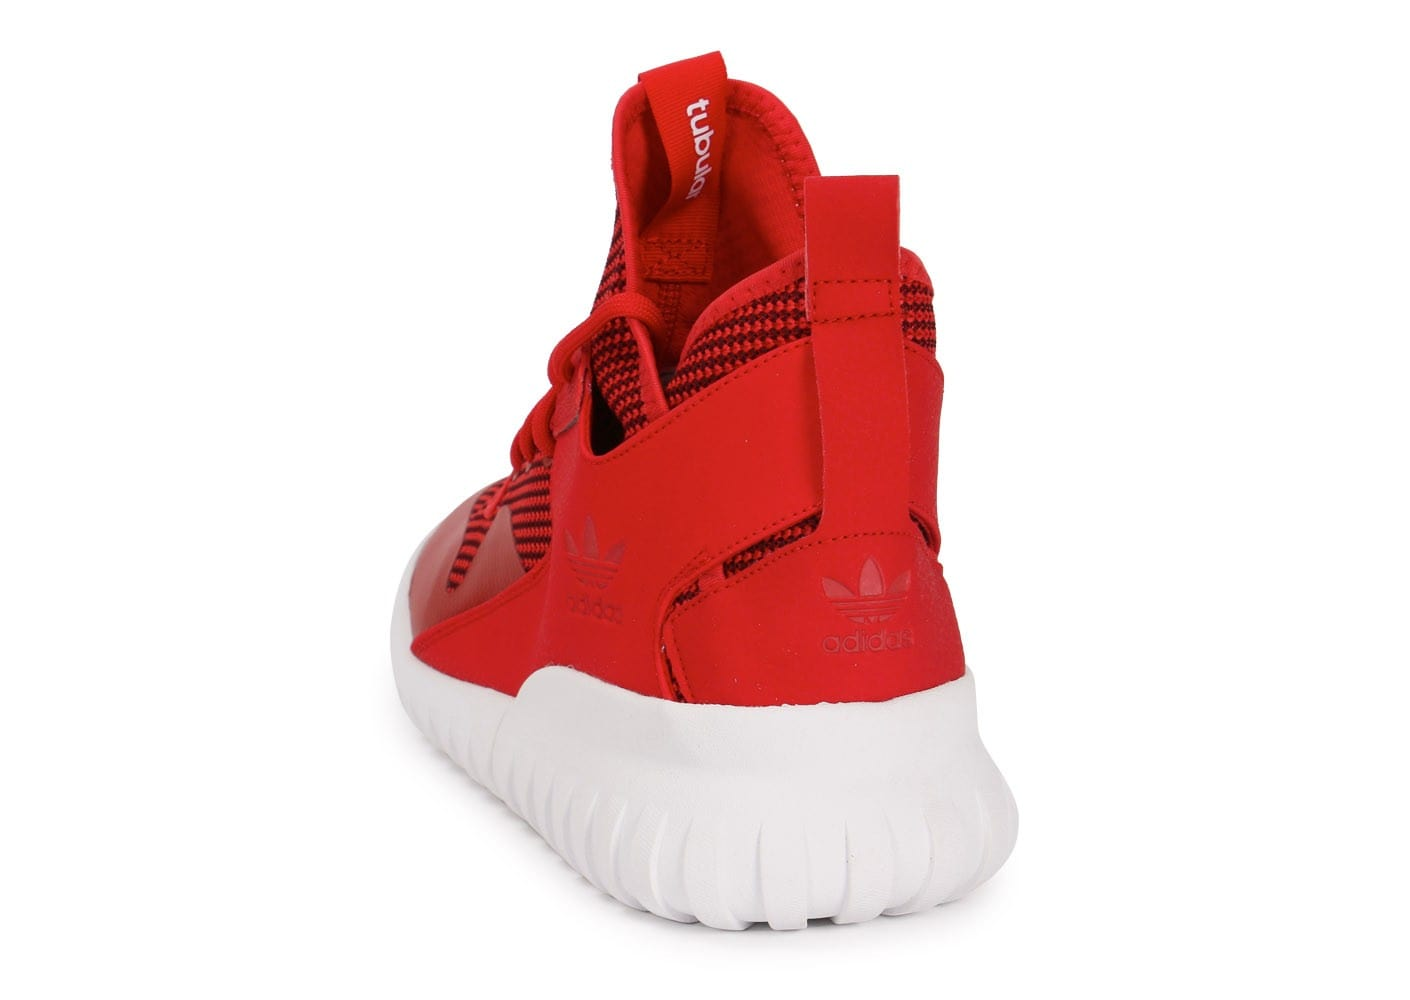 adidas rouge homme